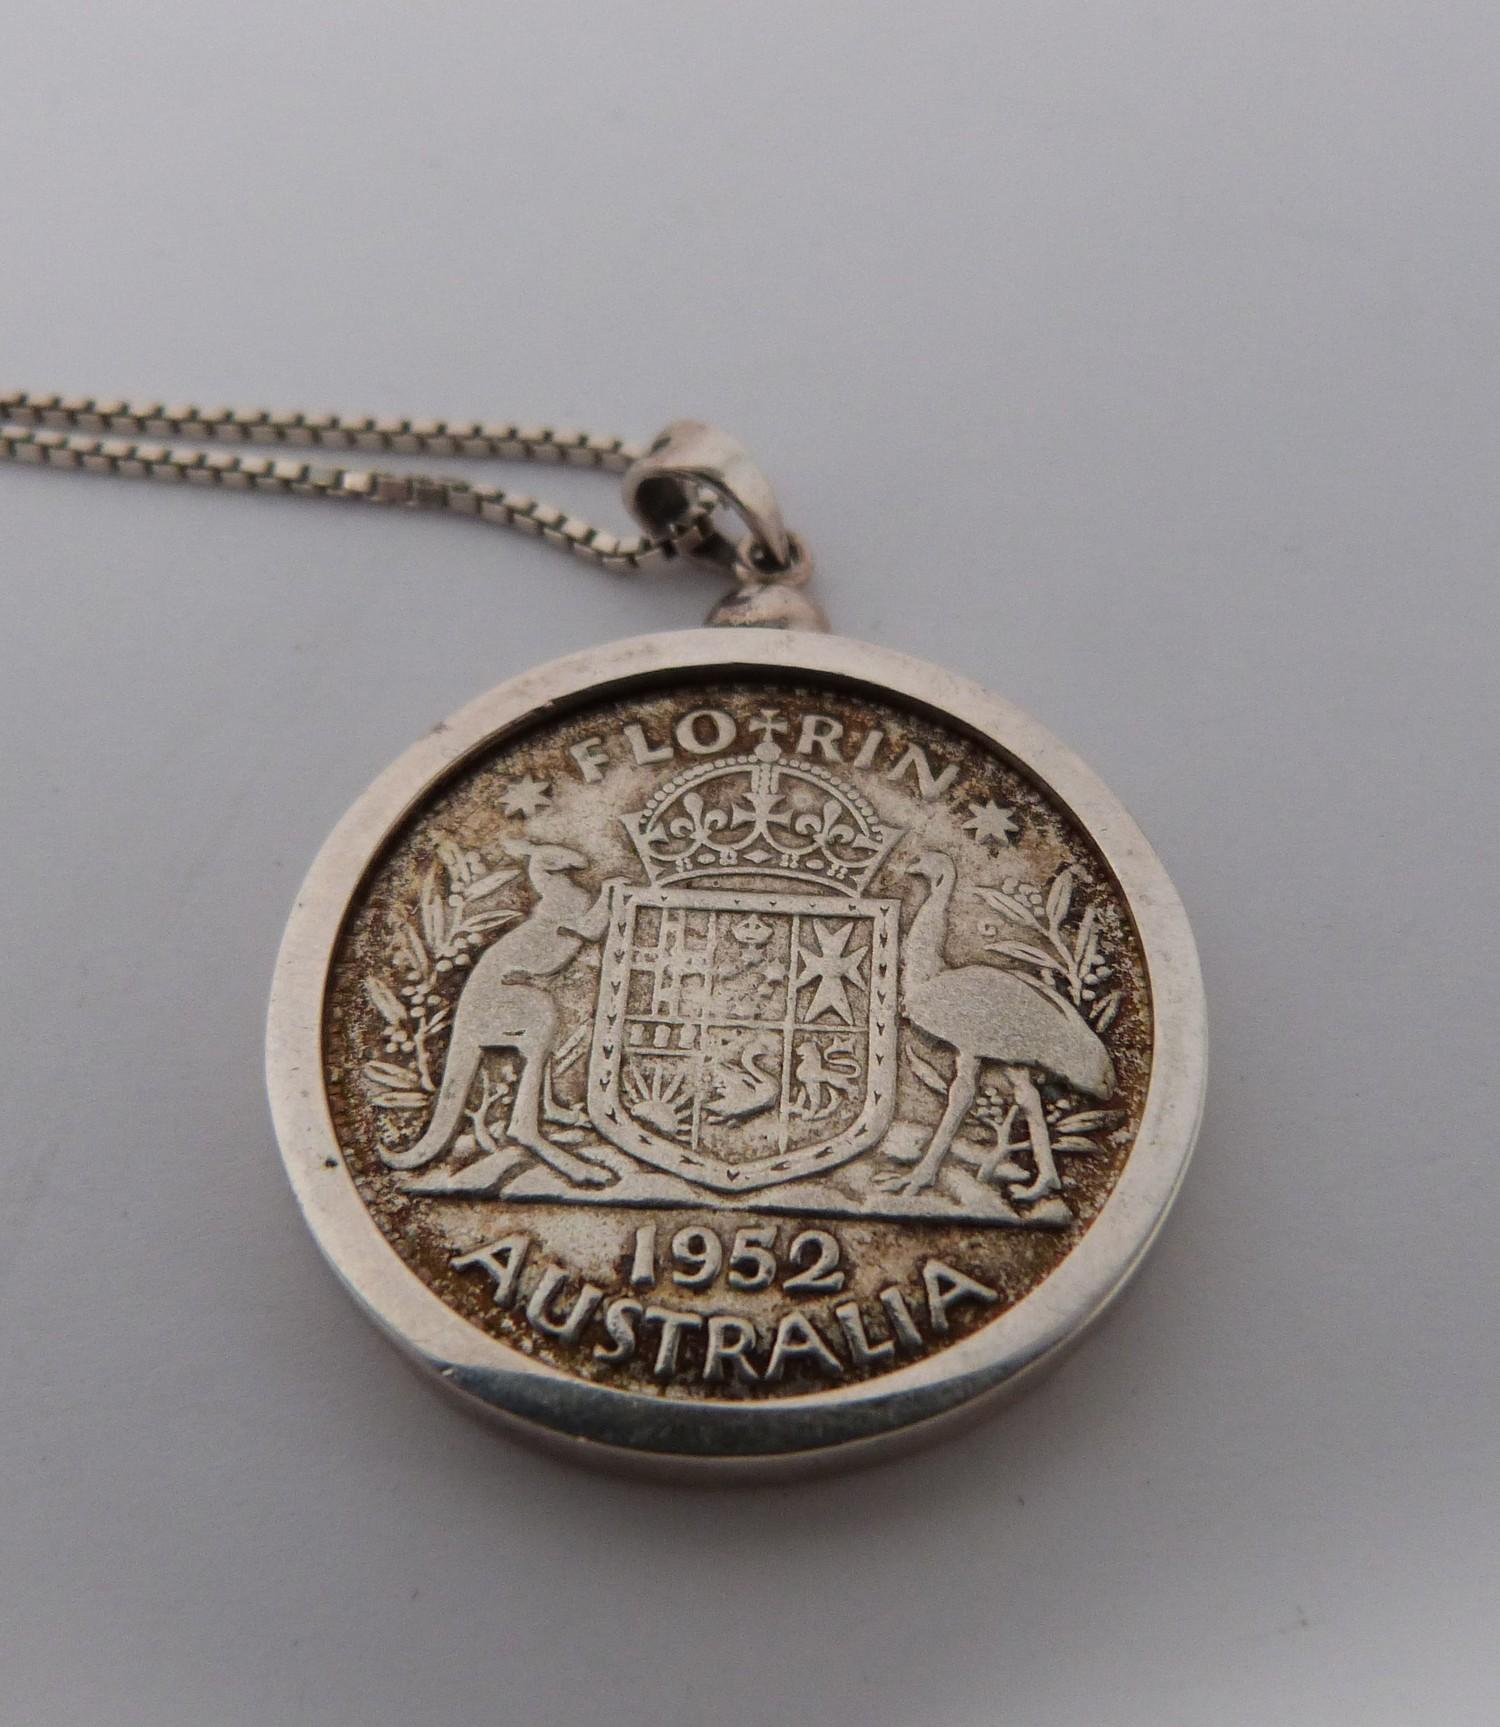 Two silver coins in silver and white metal mounts on silver chains, an American one dollar coin, - Image 4 of 6